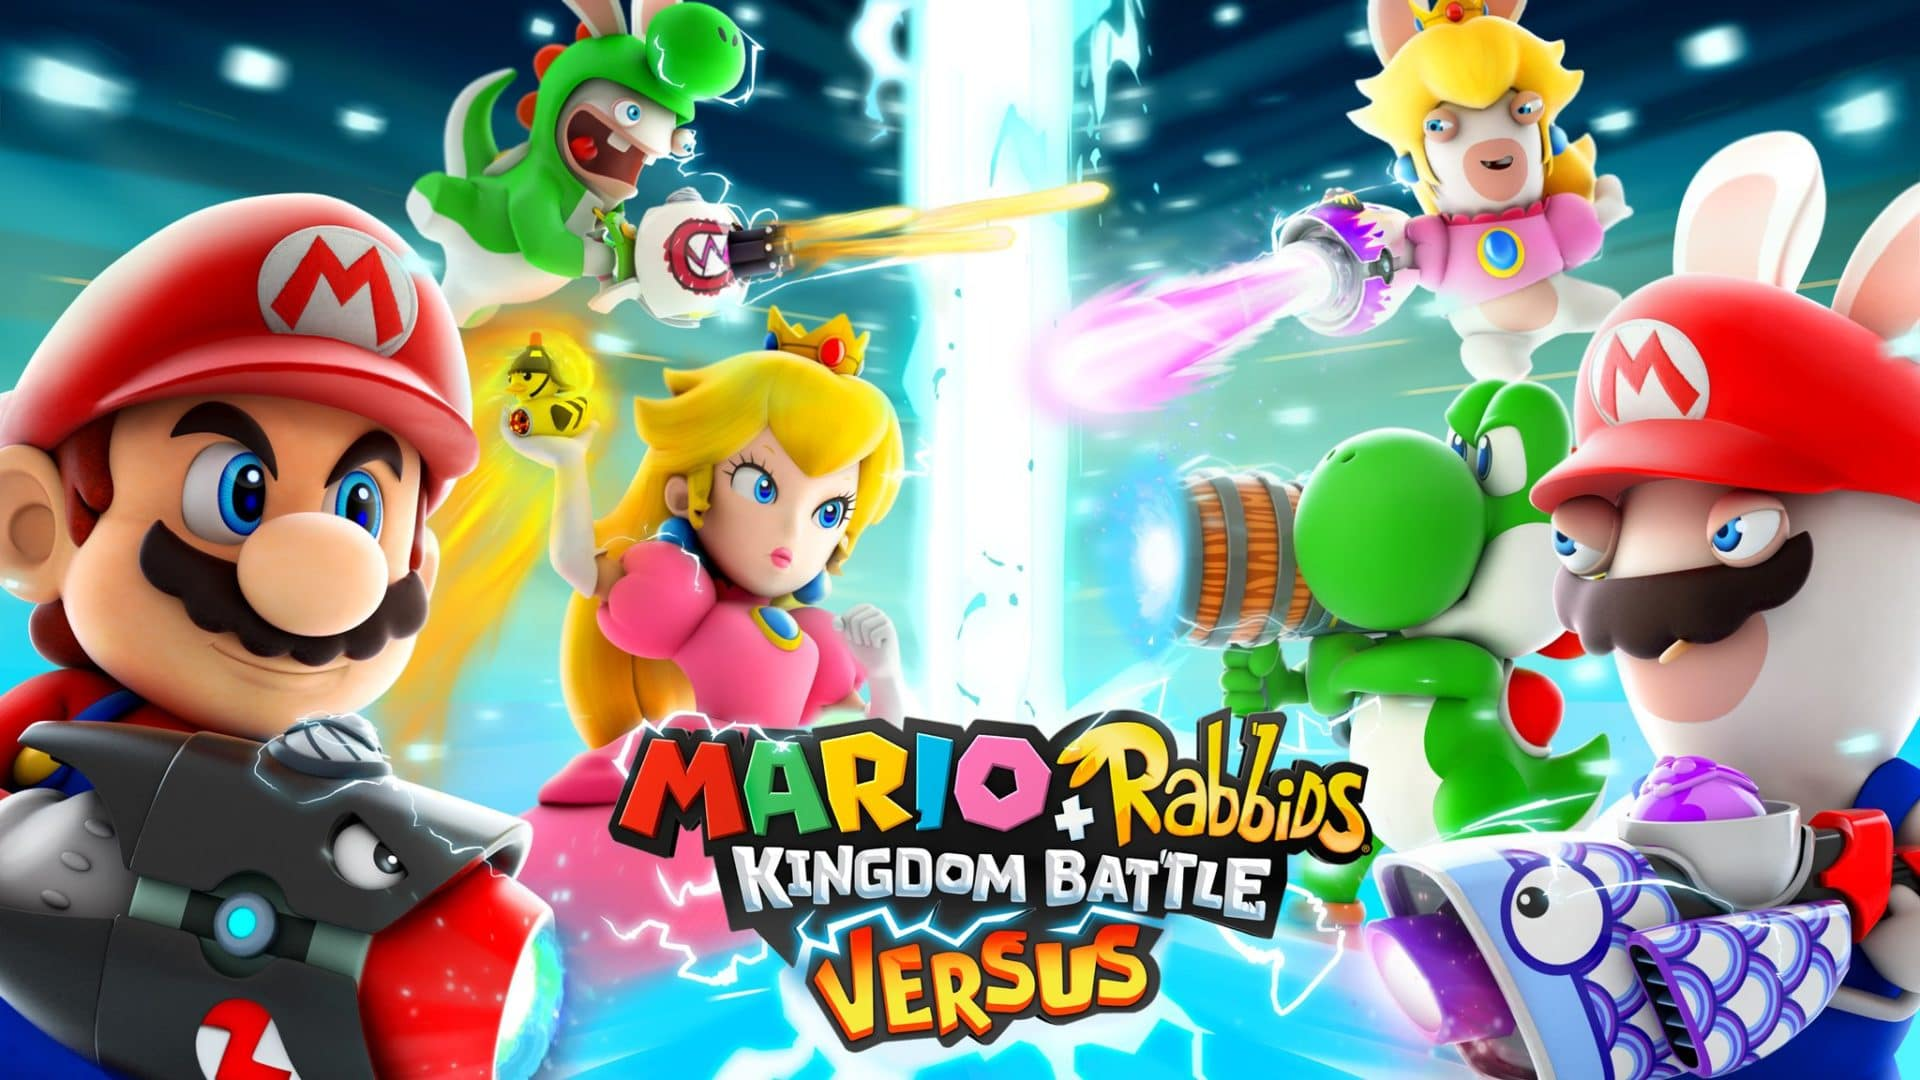 Mario + Rabbids Team could have pitched new idea